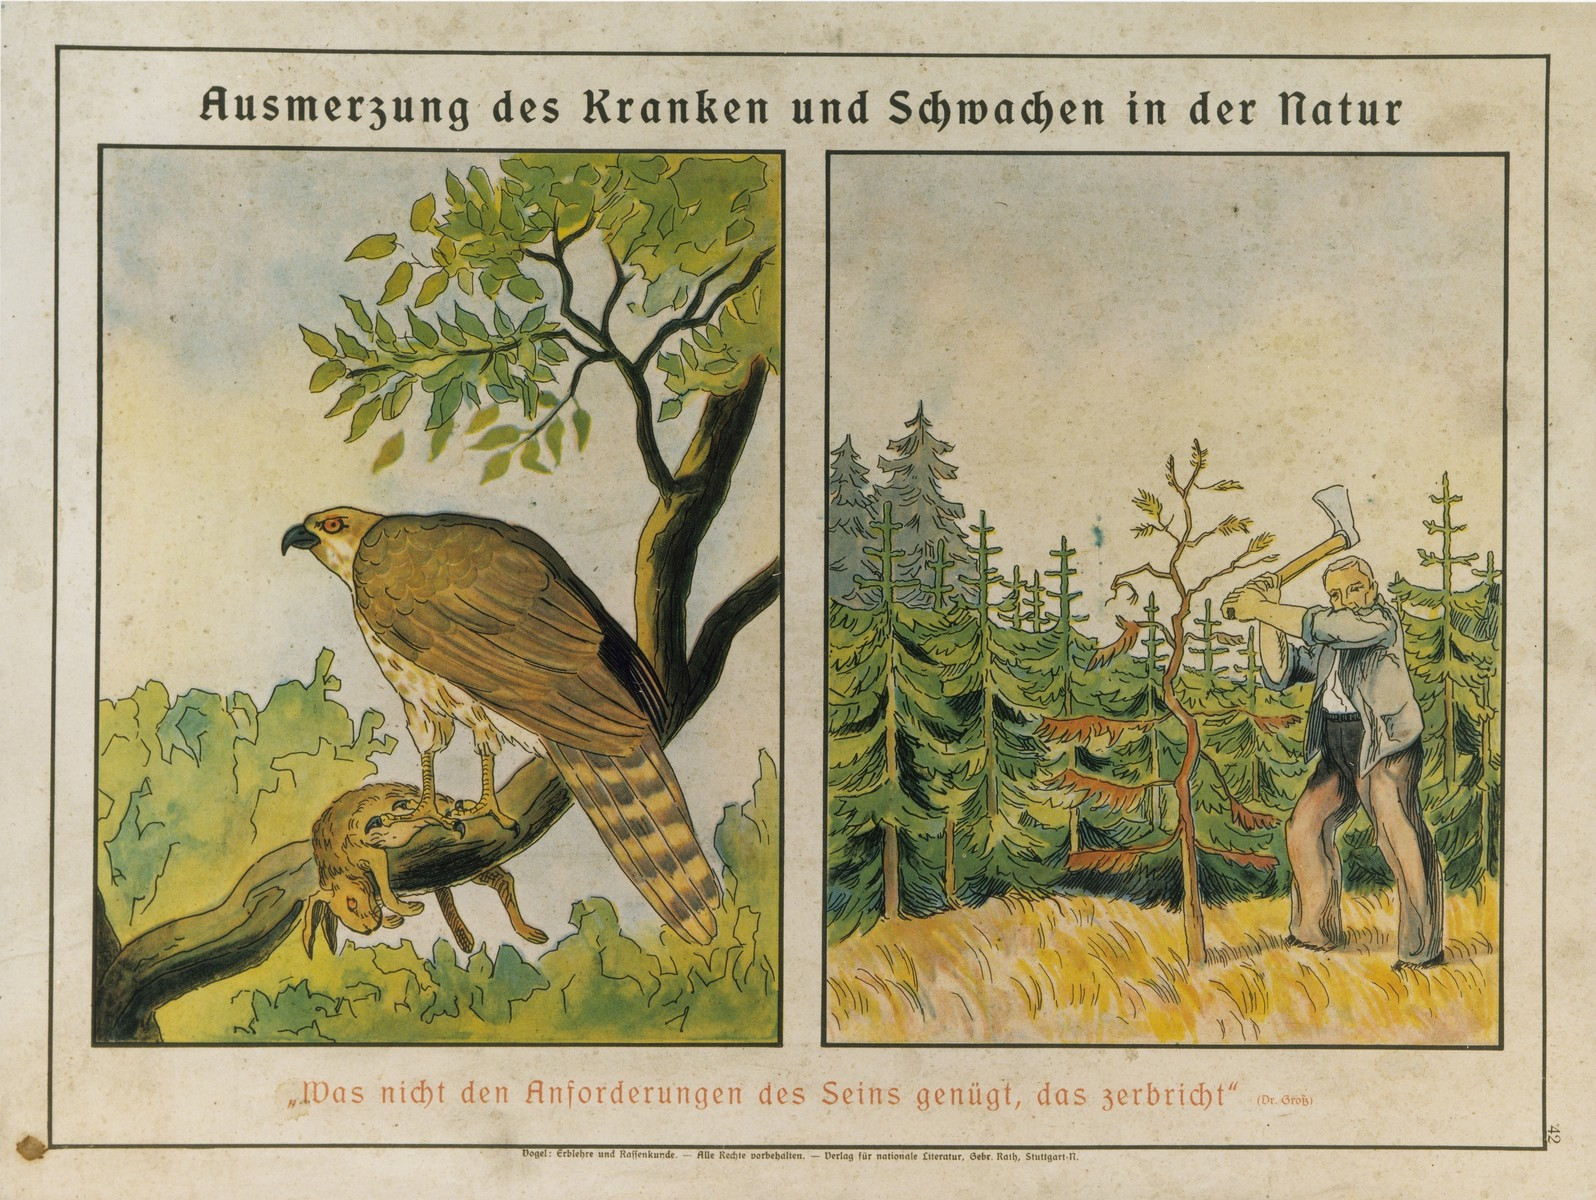 """Eugenics poster entitled """"The eradication of the sick and weak in nature"""" from Hereditary Teachings and Racial Science in Pictorial Representation by Alfred Vogel  The German quotation by Dr. Grosz reads: """"That which does not satisfy the demands of Being collapses.""""  This poster is no.42 in a series entitled, """"Erblehre und Rassenkunde"""" (Theory of Inheritance and Racial Hygiene), published by the Verlag für nationale Literatur (Publisher for National Literature), Stuttgart."""